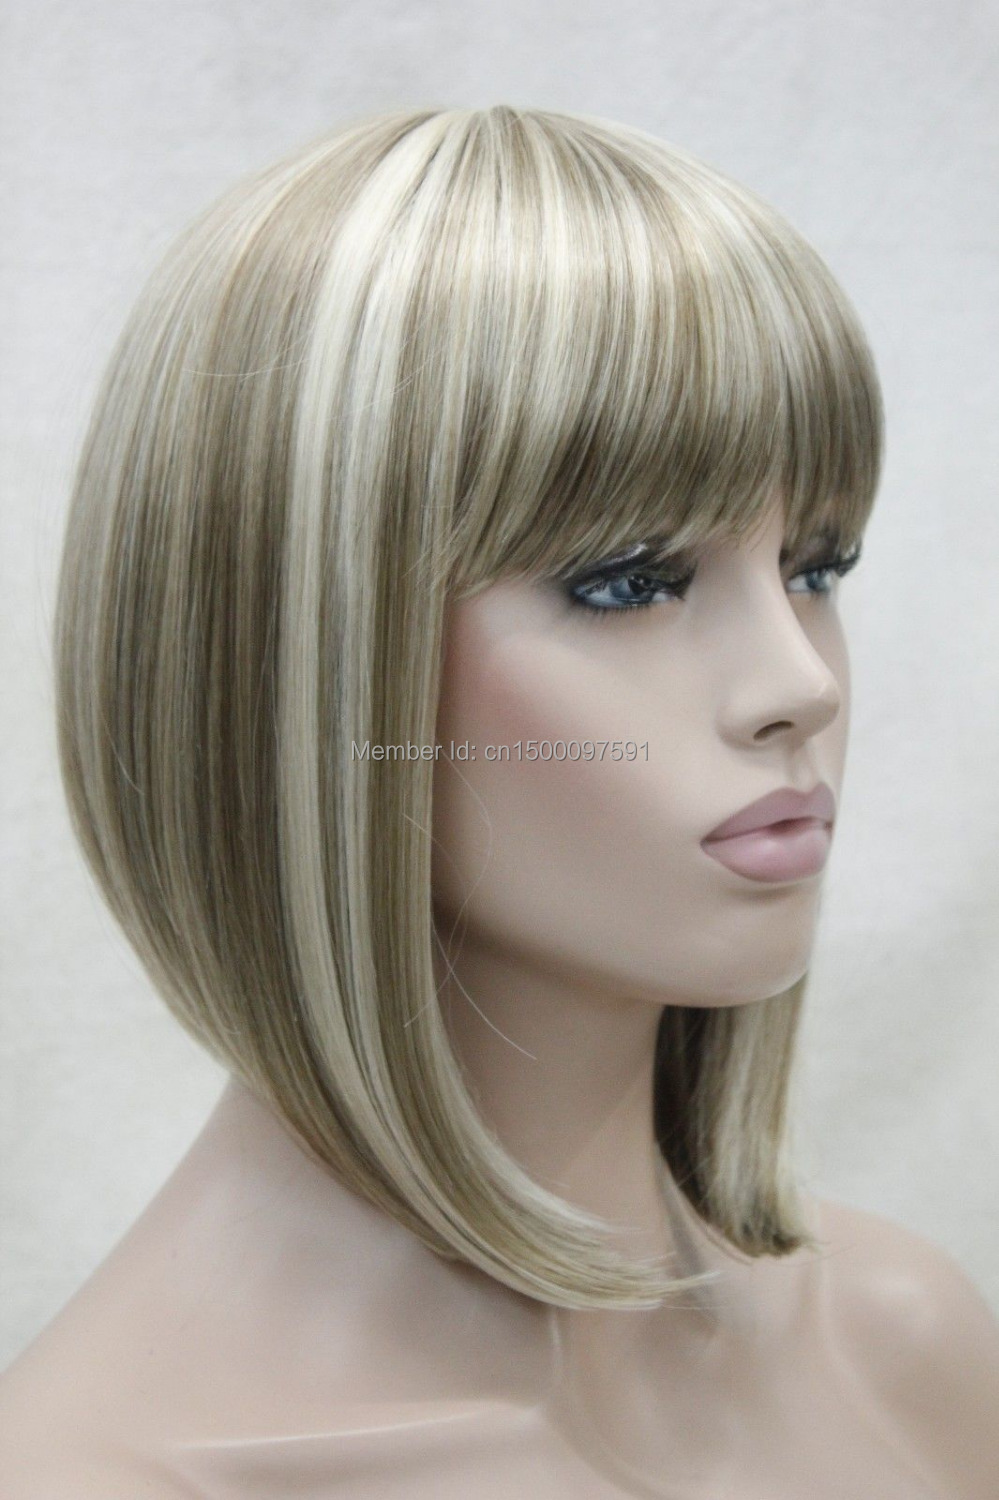 free Shipping*&amp;***New cute blonde mix short straight synthetic womens BOB wig<br><br>Aliexpress